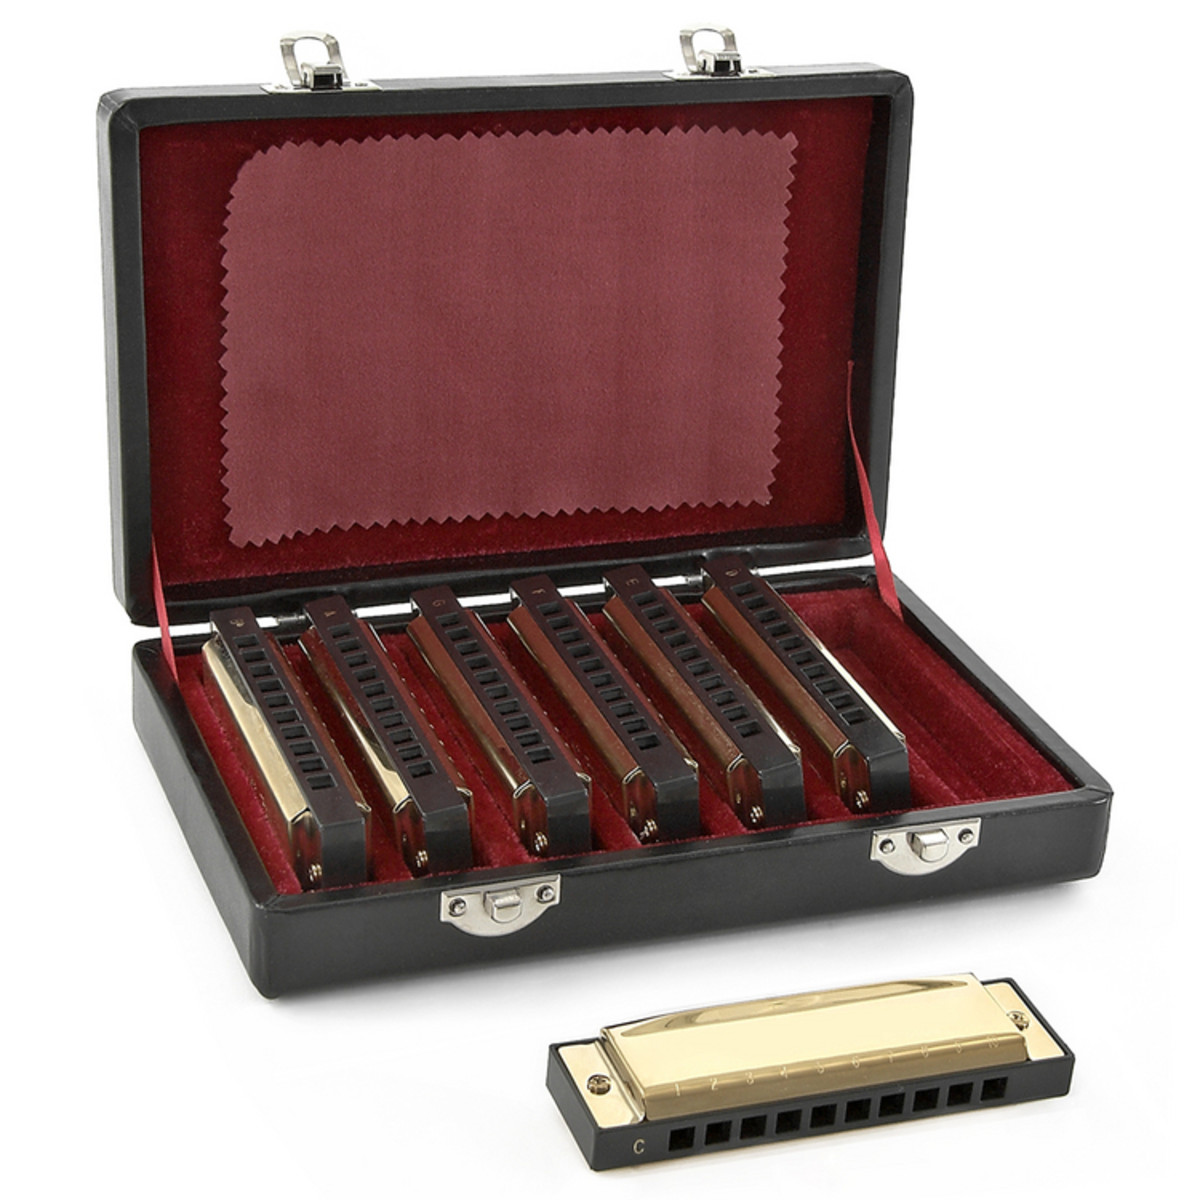 Image of Blues Golden Harmonica Set by Gear4music